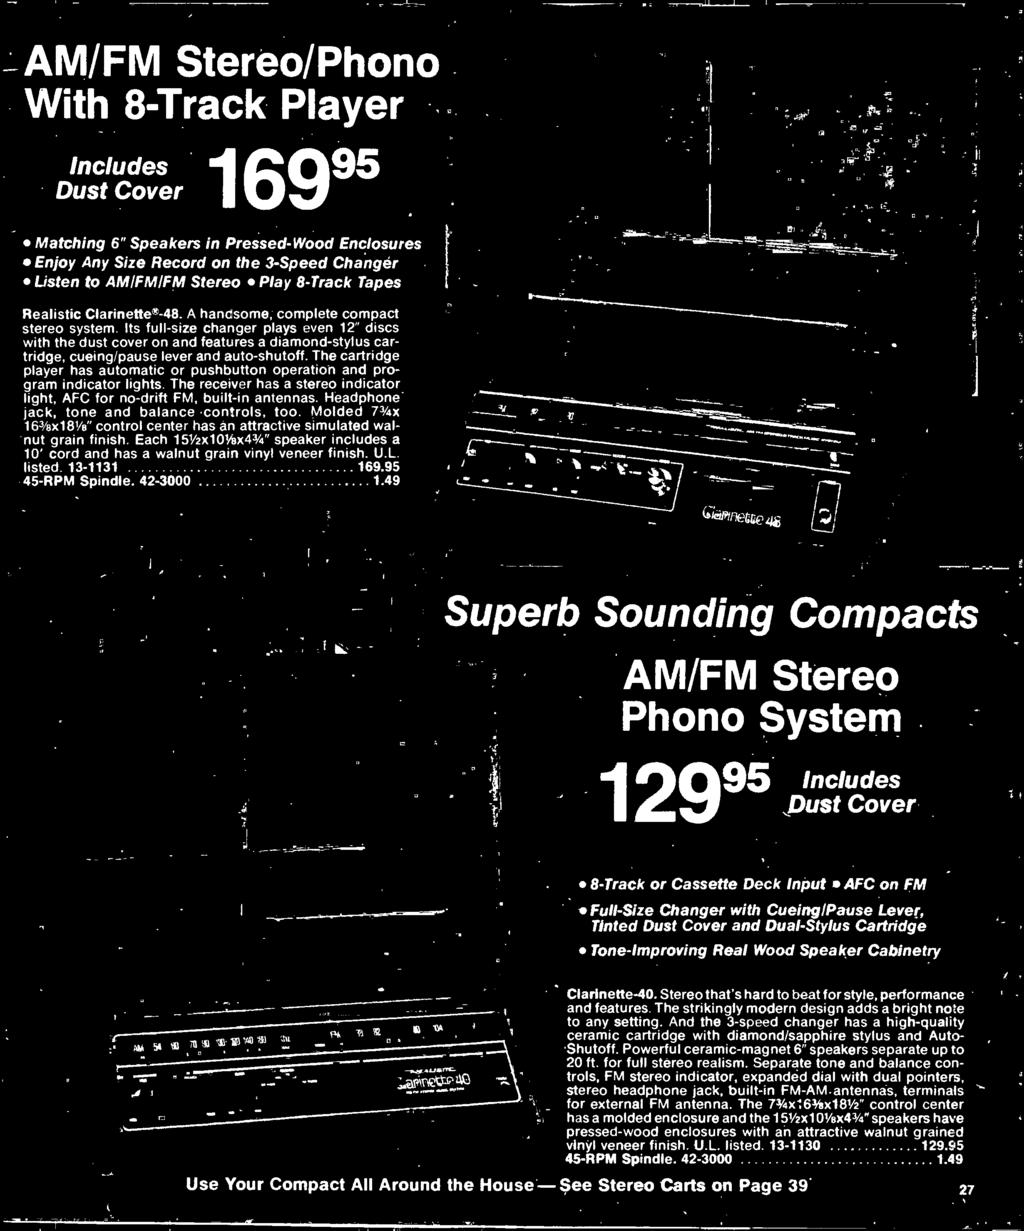 1977 Electronics Catalog Pdf Fet Preamp With Tone Control By 2n3819 Headphone Jack And Balance Controls Too Molded 73 4x 163